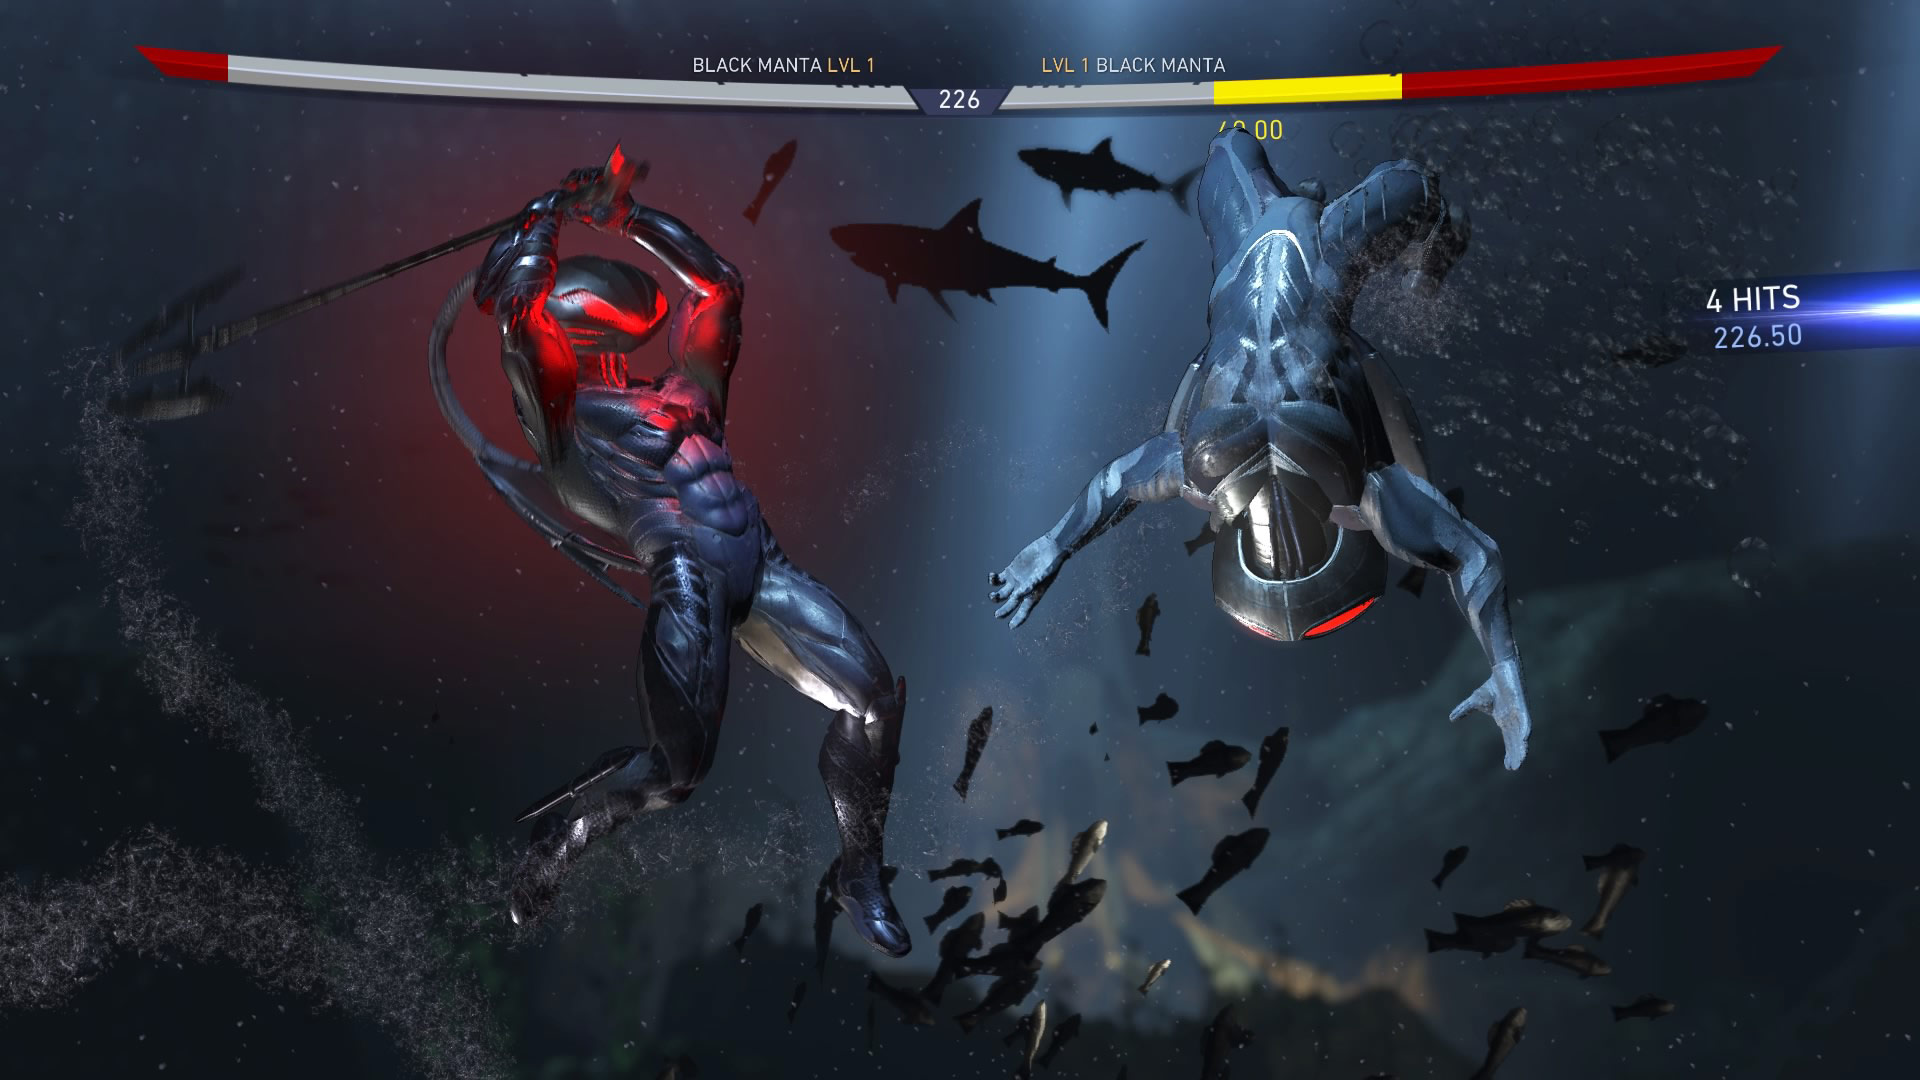 Black Manta screenshots in Injustice 2 7 out of 7 image gallery